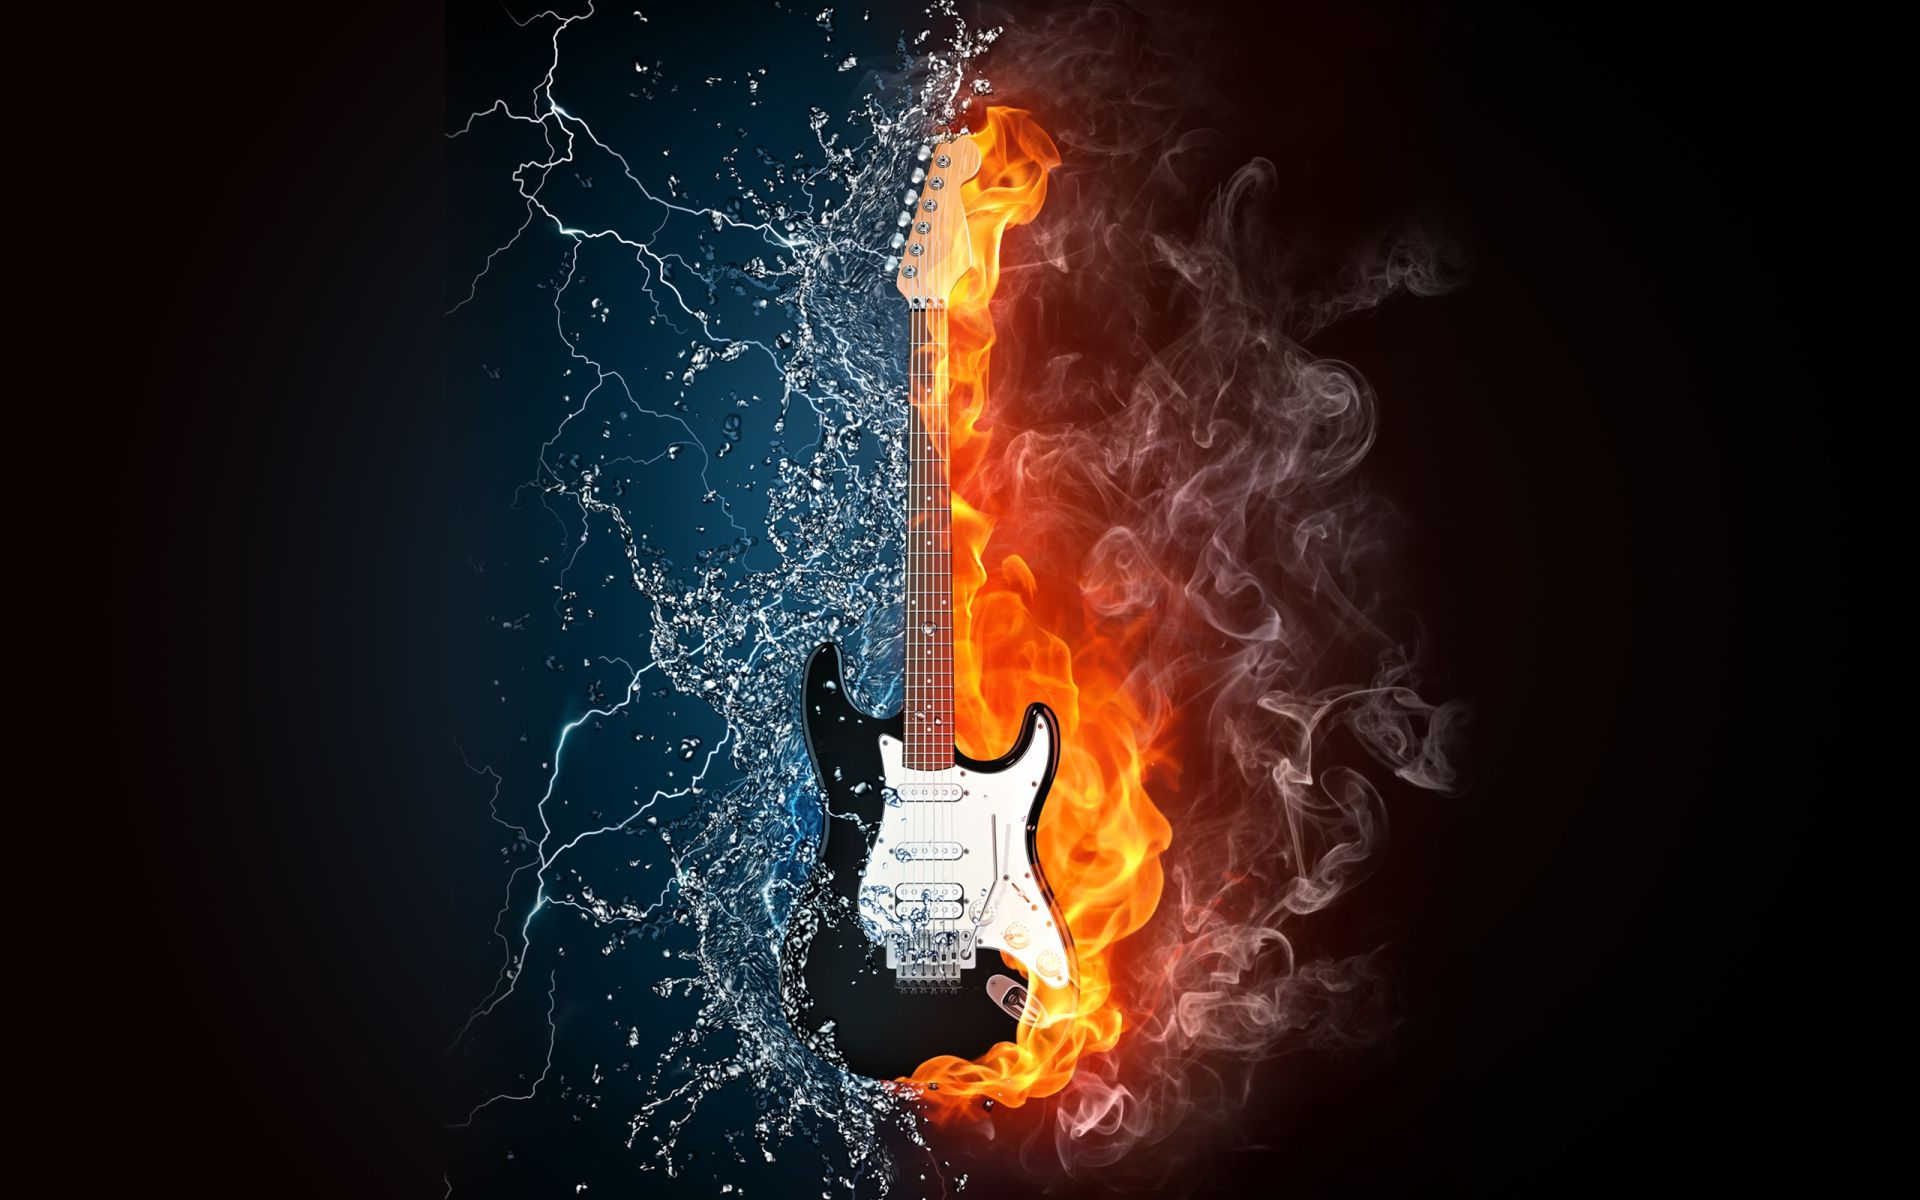 Fire Guitar, Download Wallpaper